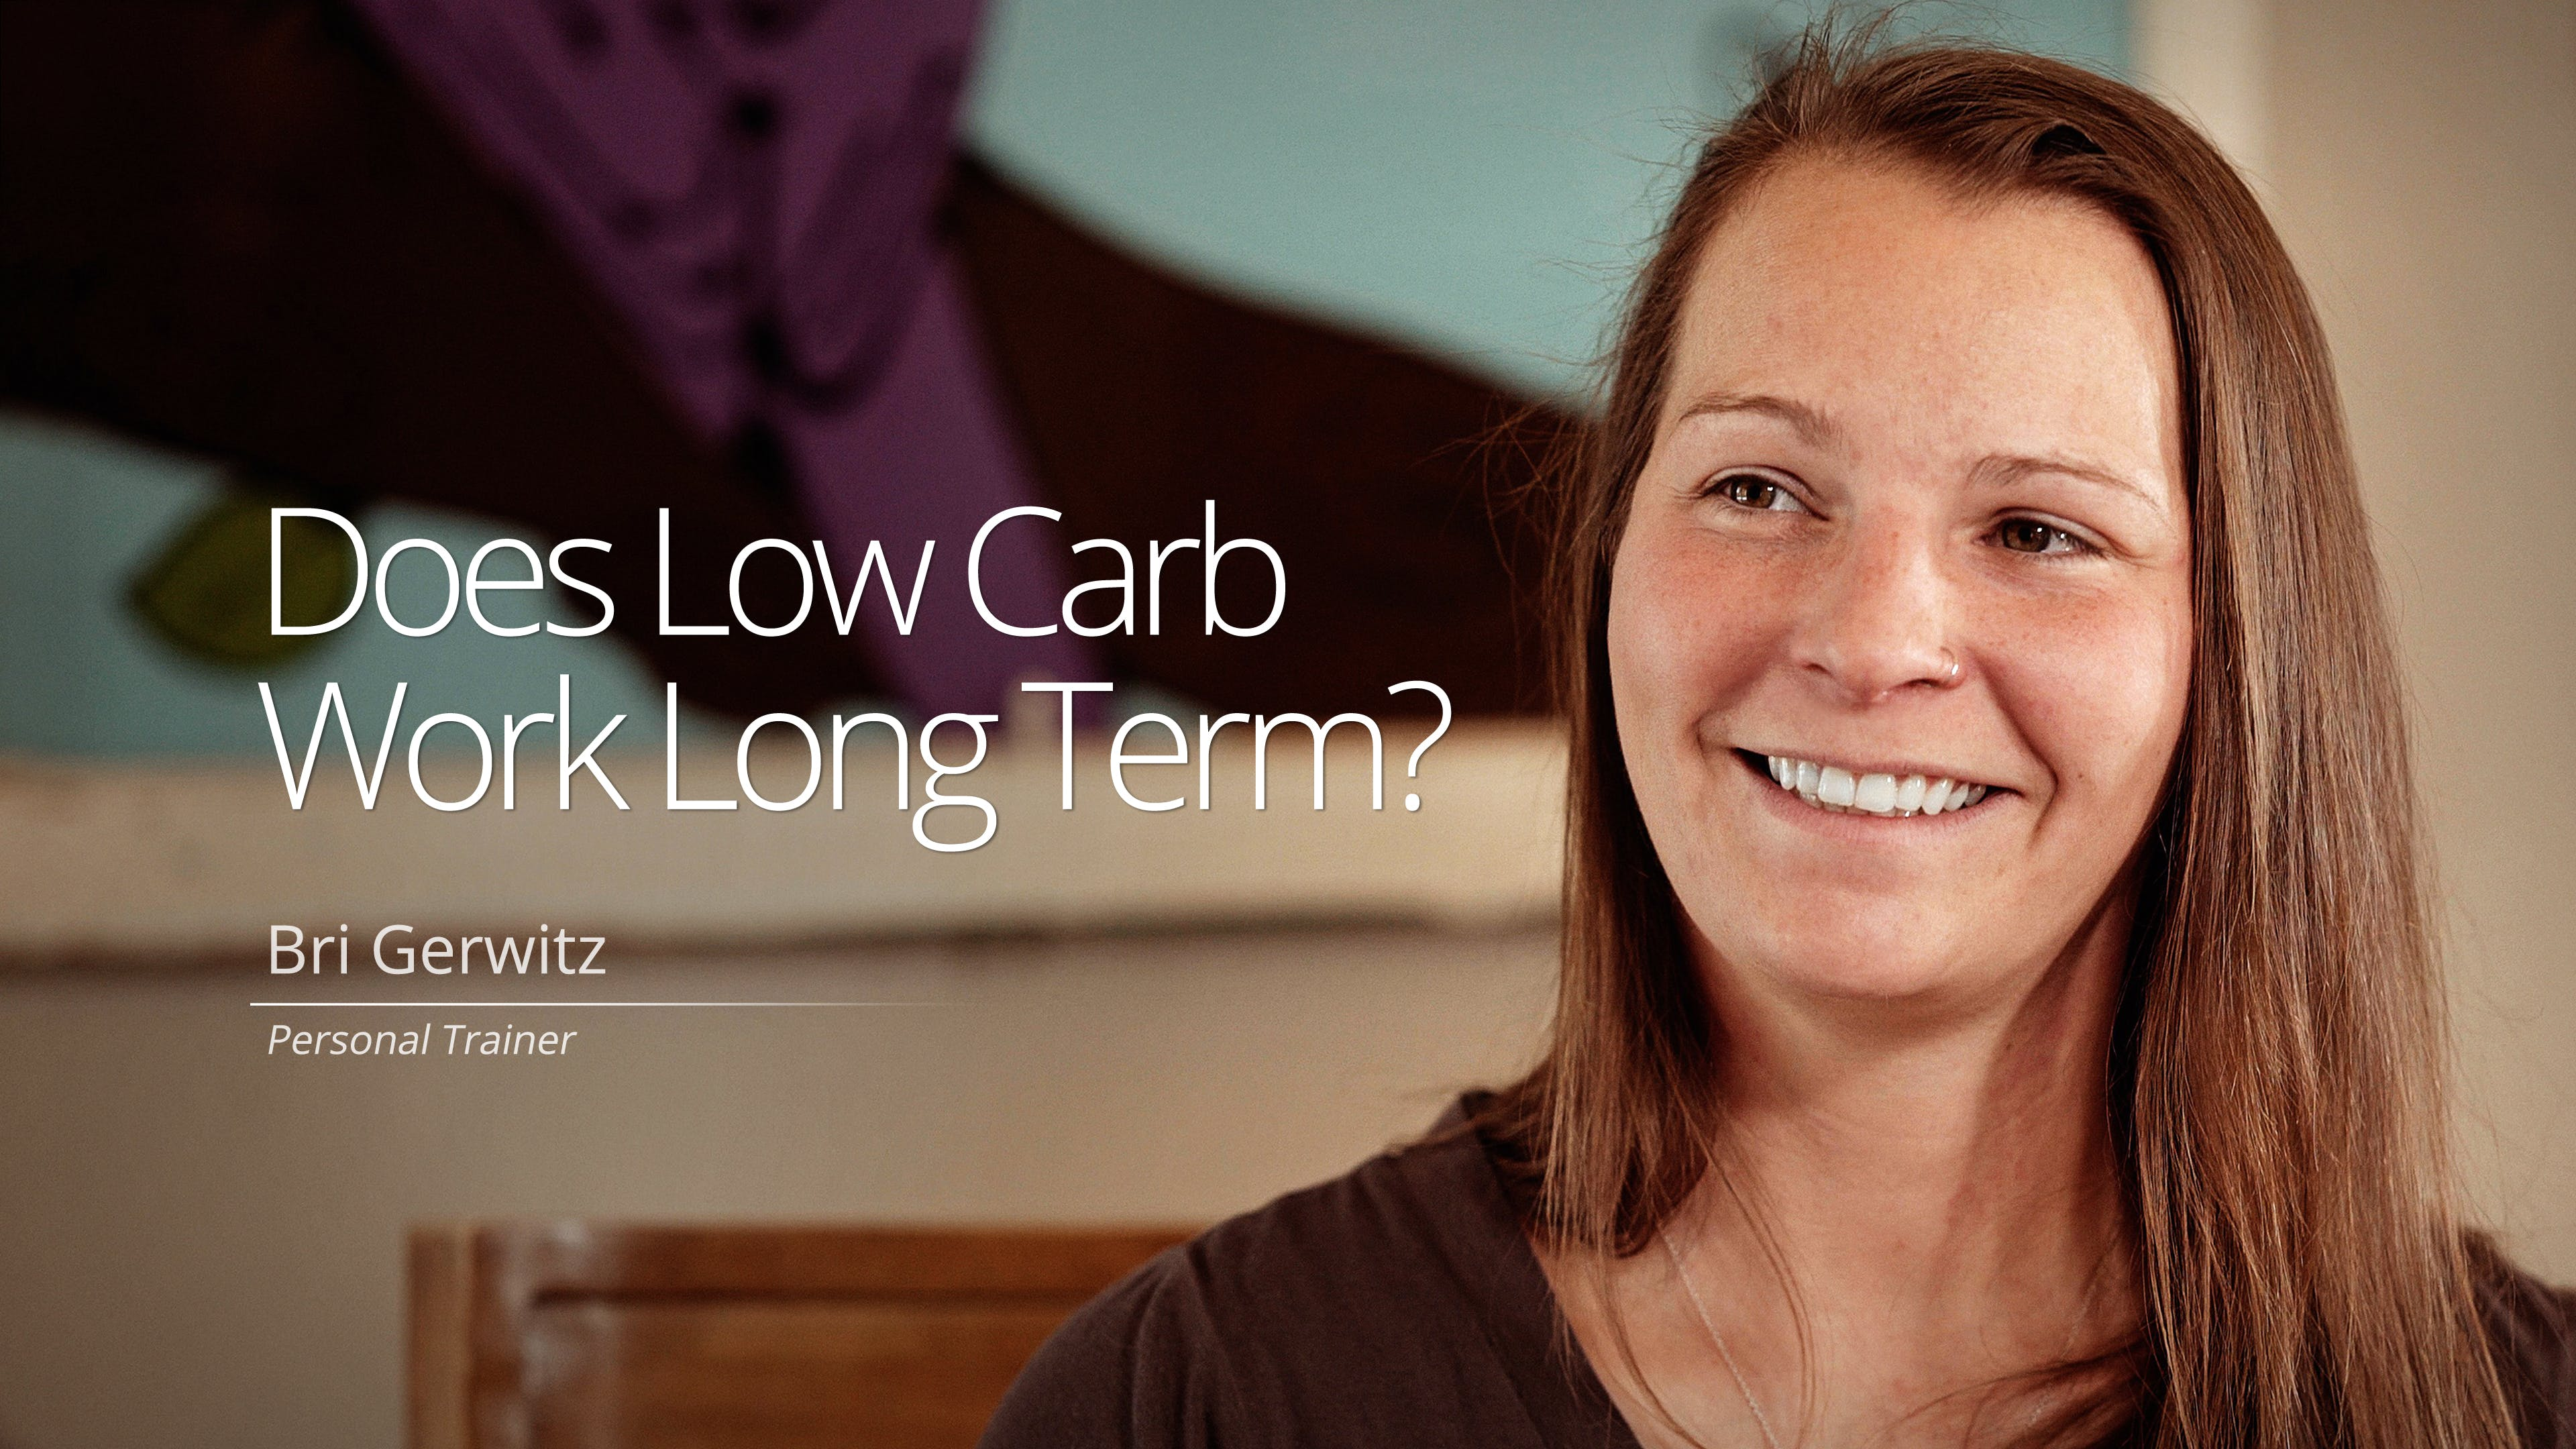 Does low carb work long term?